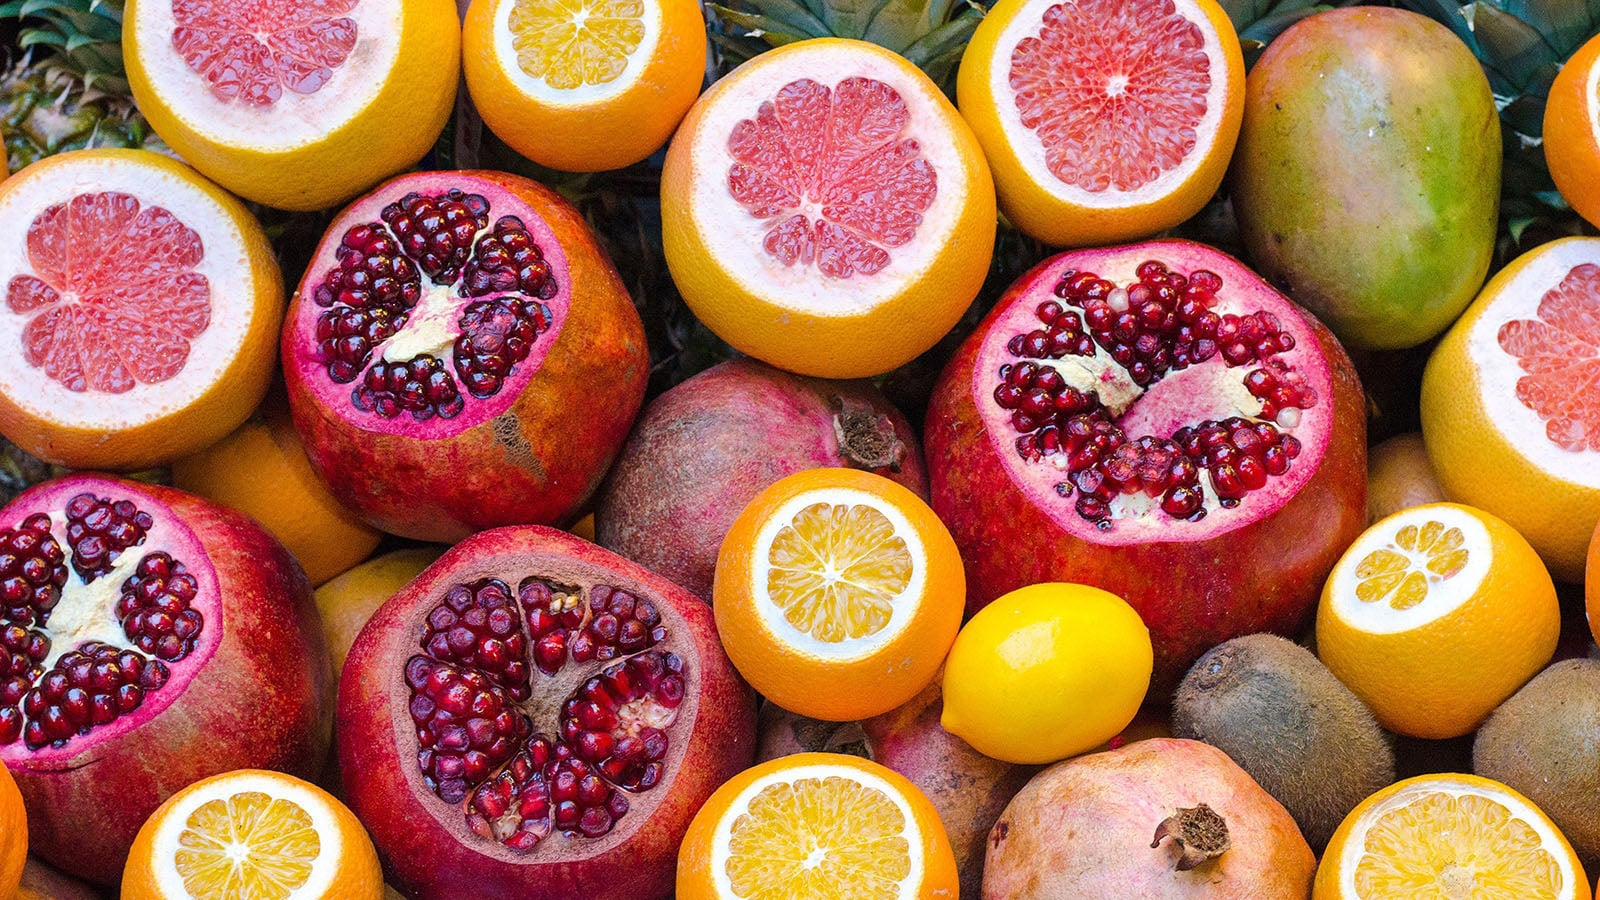 pomegranates oranges and grapefruit fill the image - some fruit have top cut off to show colourful seeds